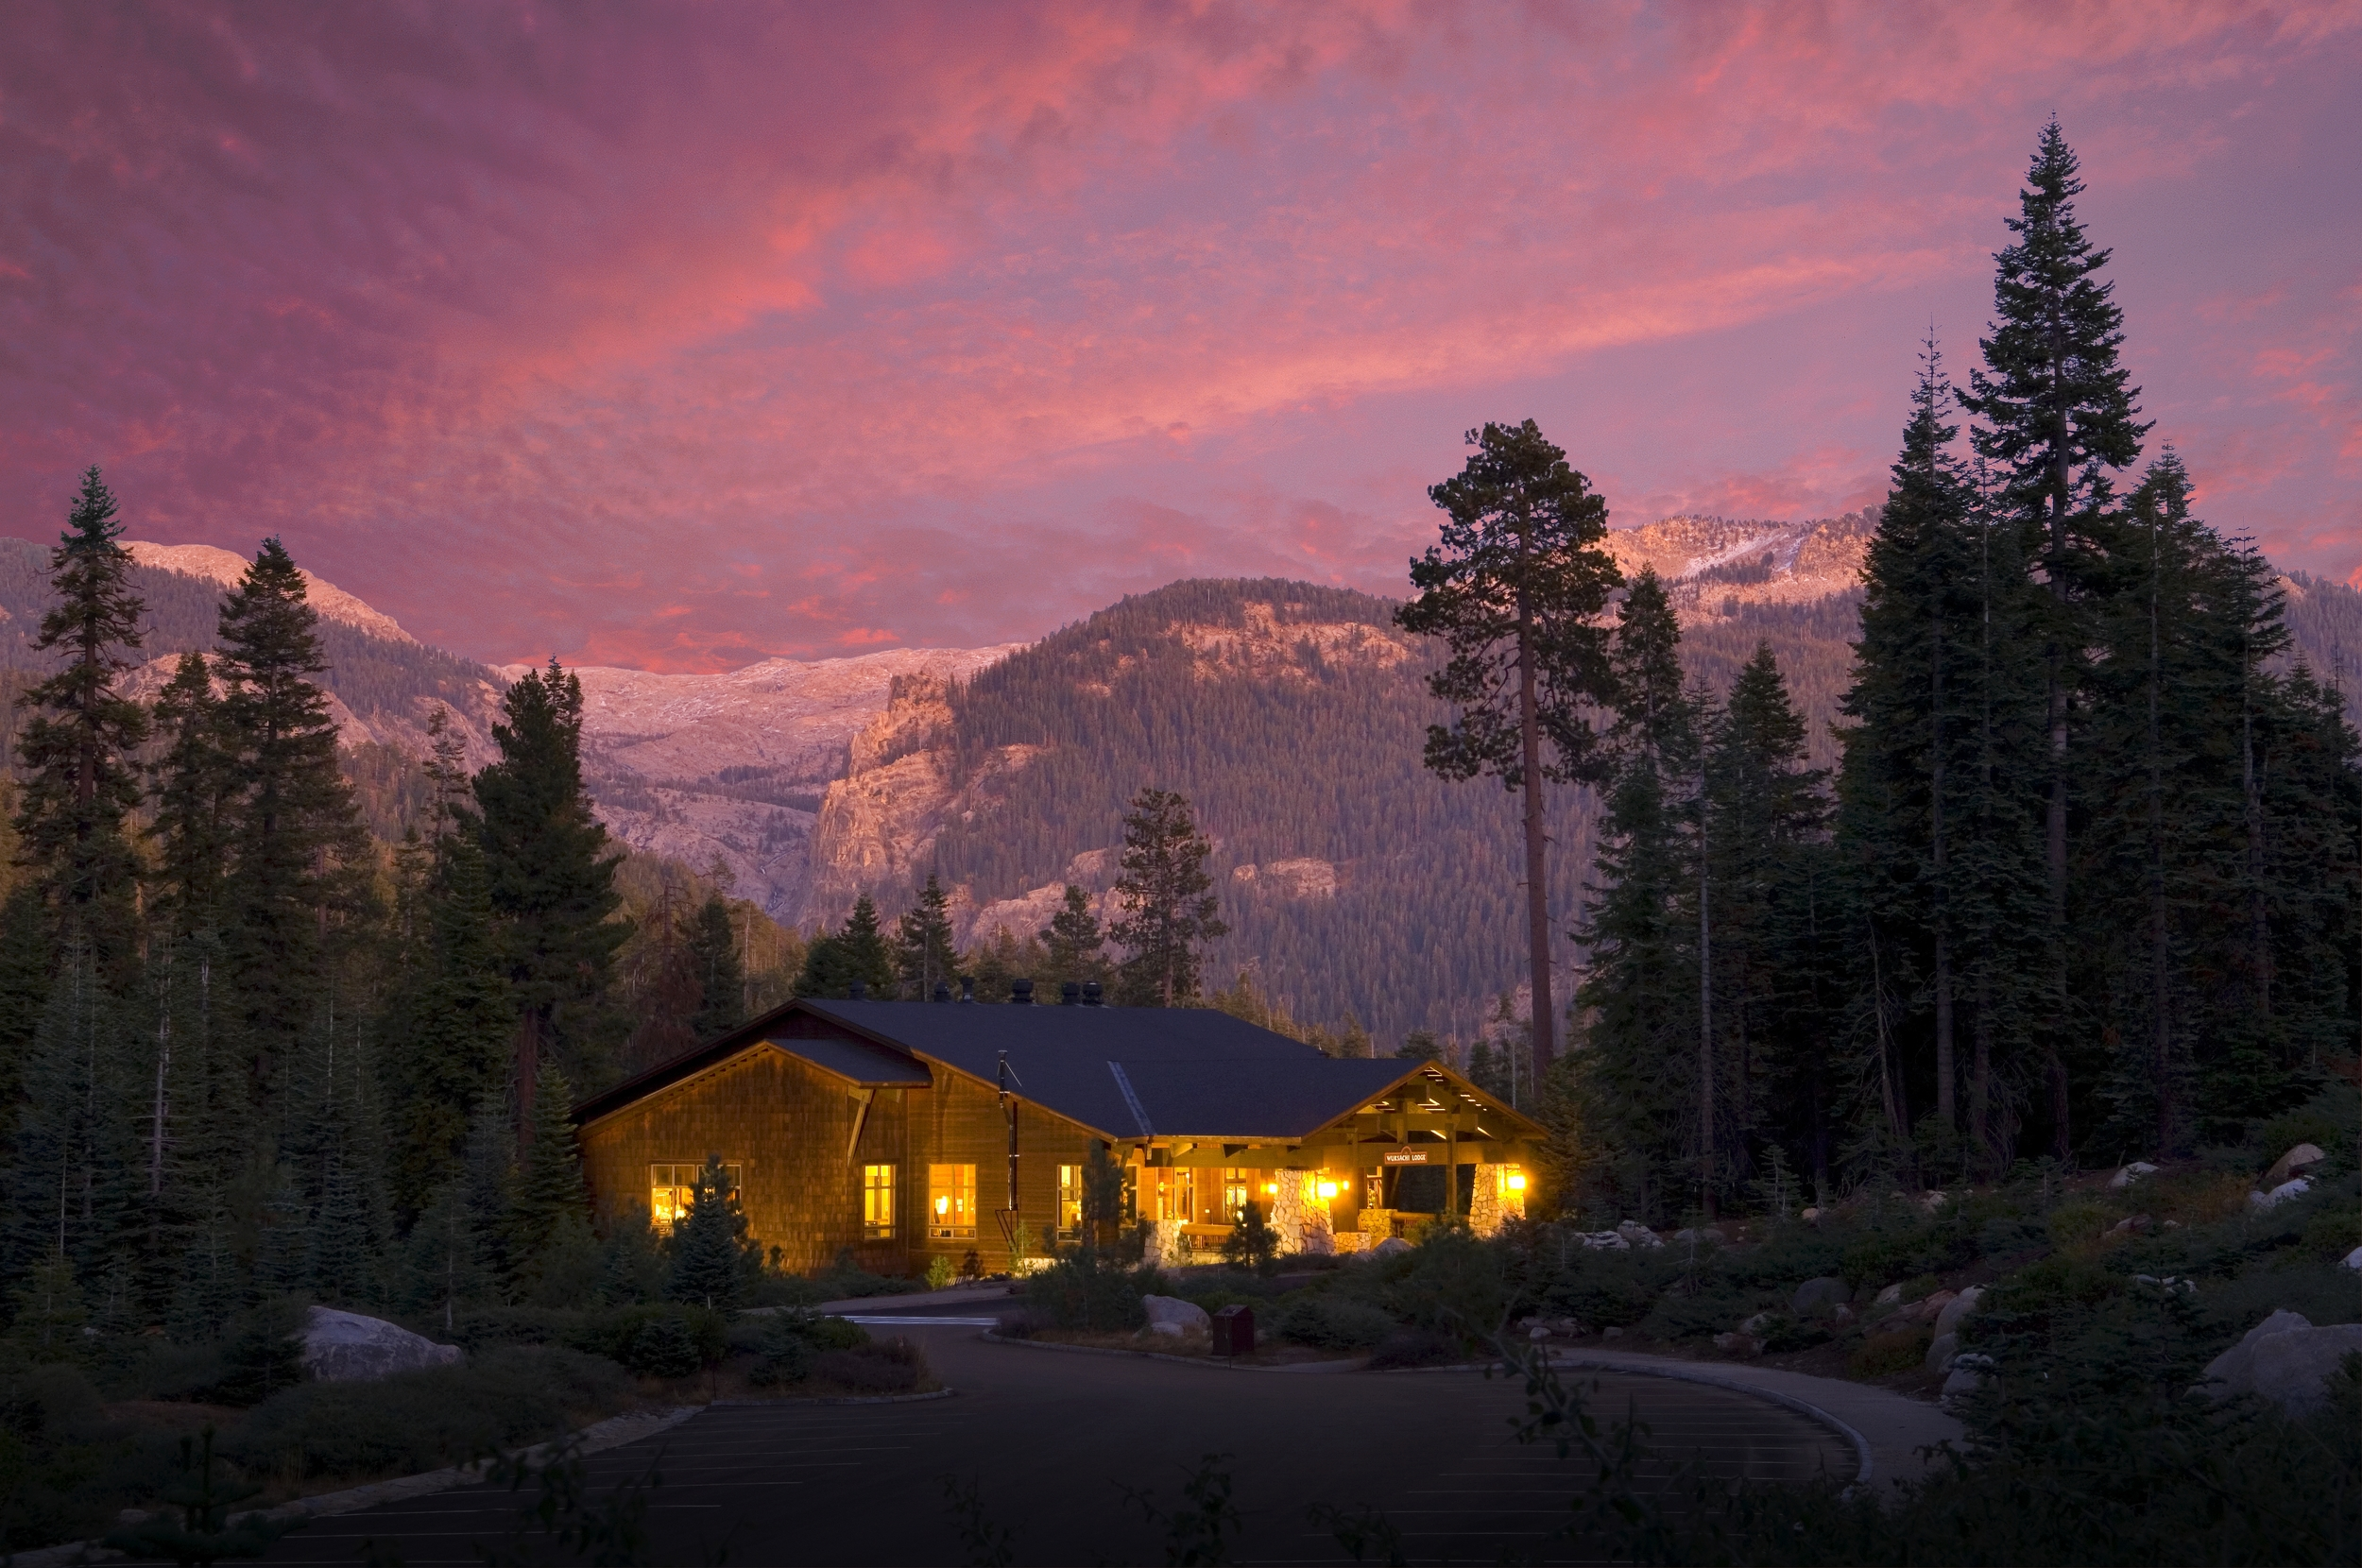 Wuksachi Lodge. If I bought this place I would rename it 'Lodge of Golden Light With Violet Backdrop.'Either that or 'Smitty's Motel'.